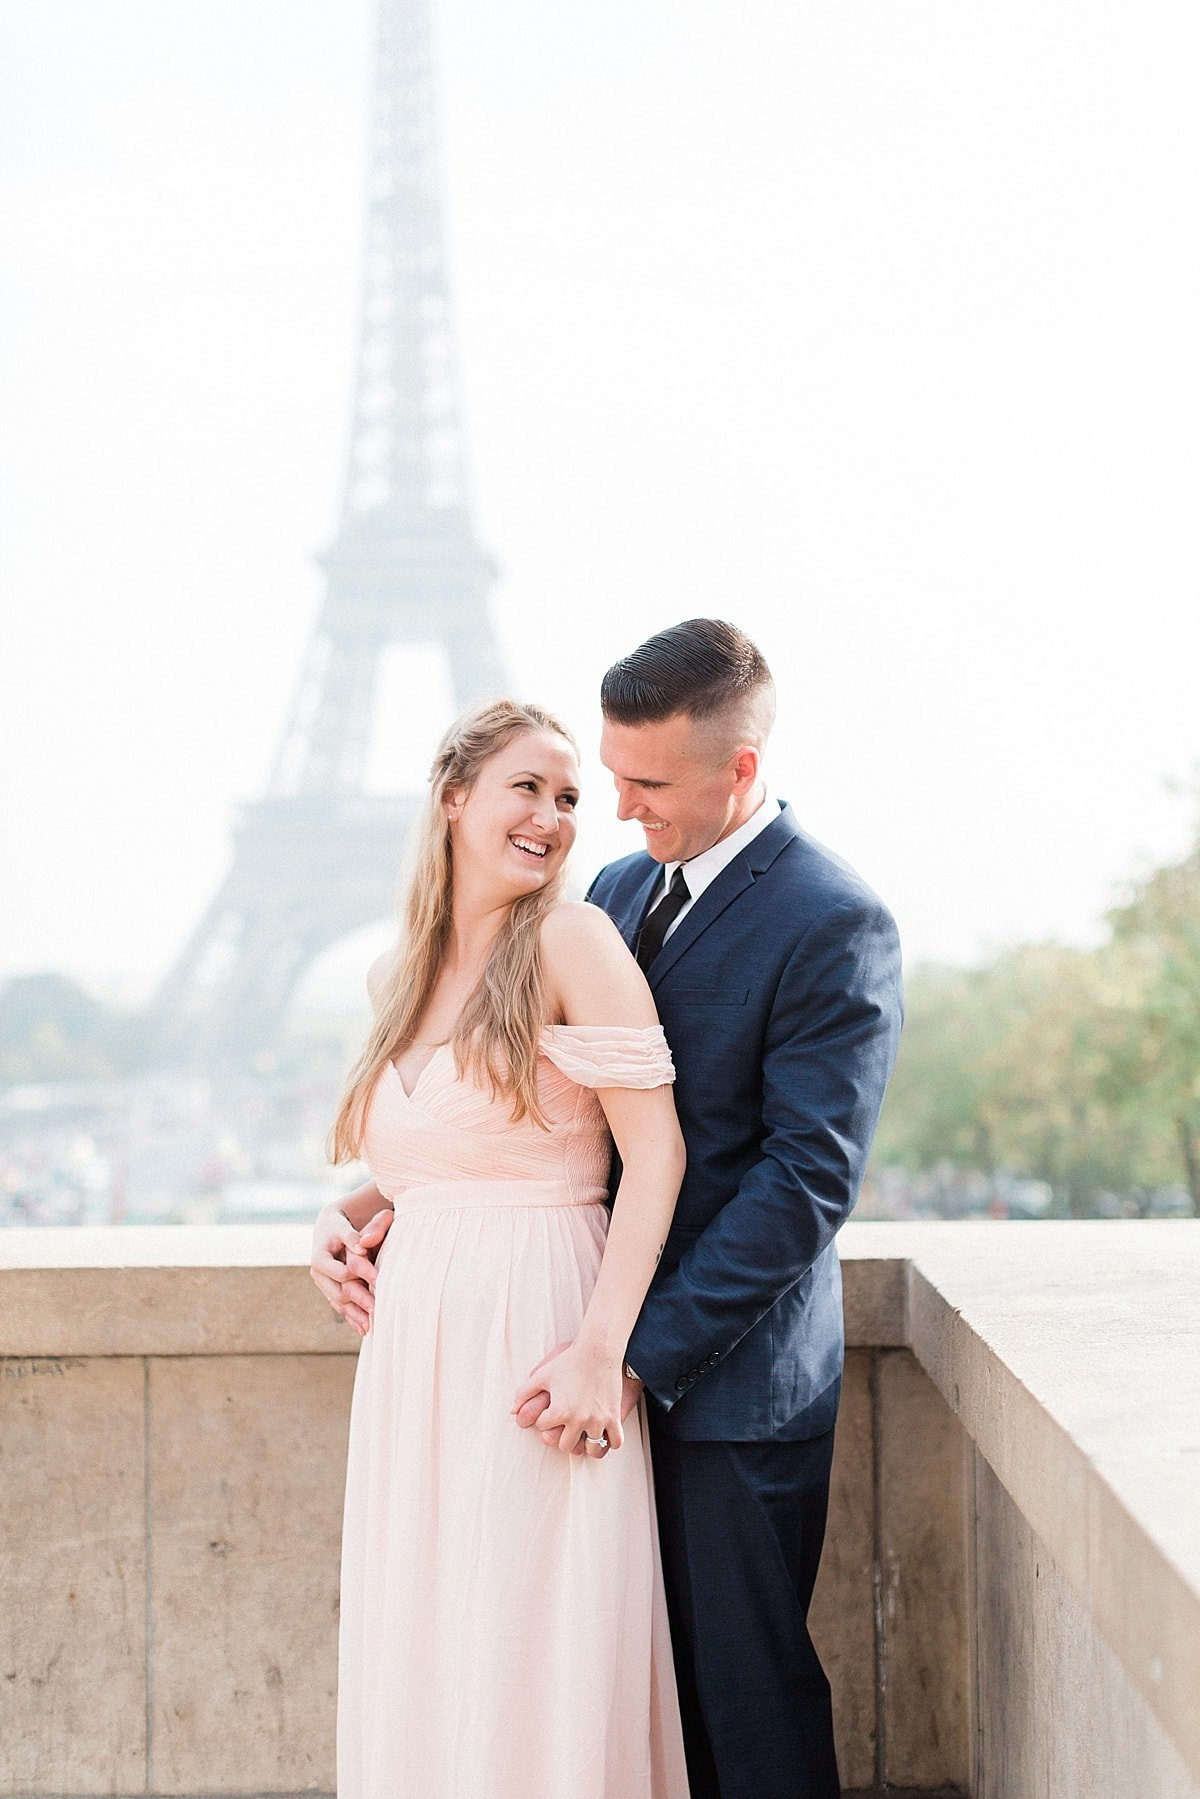 Paris, France anniversary session photographed at the Eiffel Tower by France Destination Wedding Photographer, Alicia Yarrish Photography